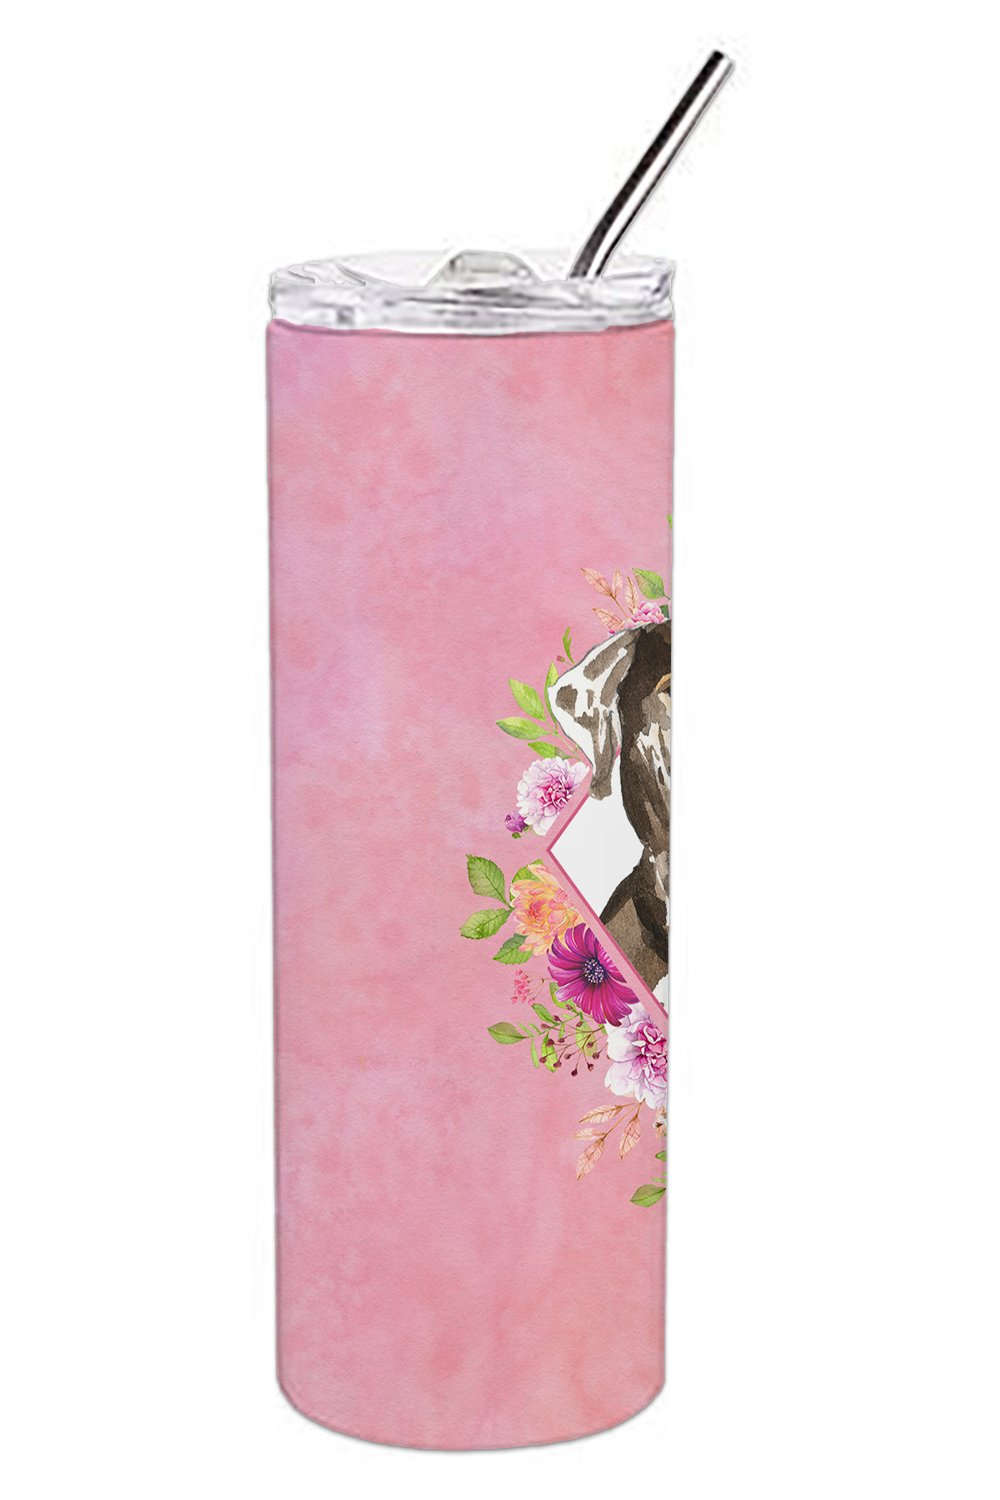 Catahoula Leopard Dog Pink Flowers Double Walled Stainless Steel 20 oz Skinny Tumbler CK4249TBL20 by Caroline's Treasures